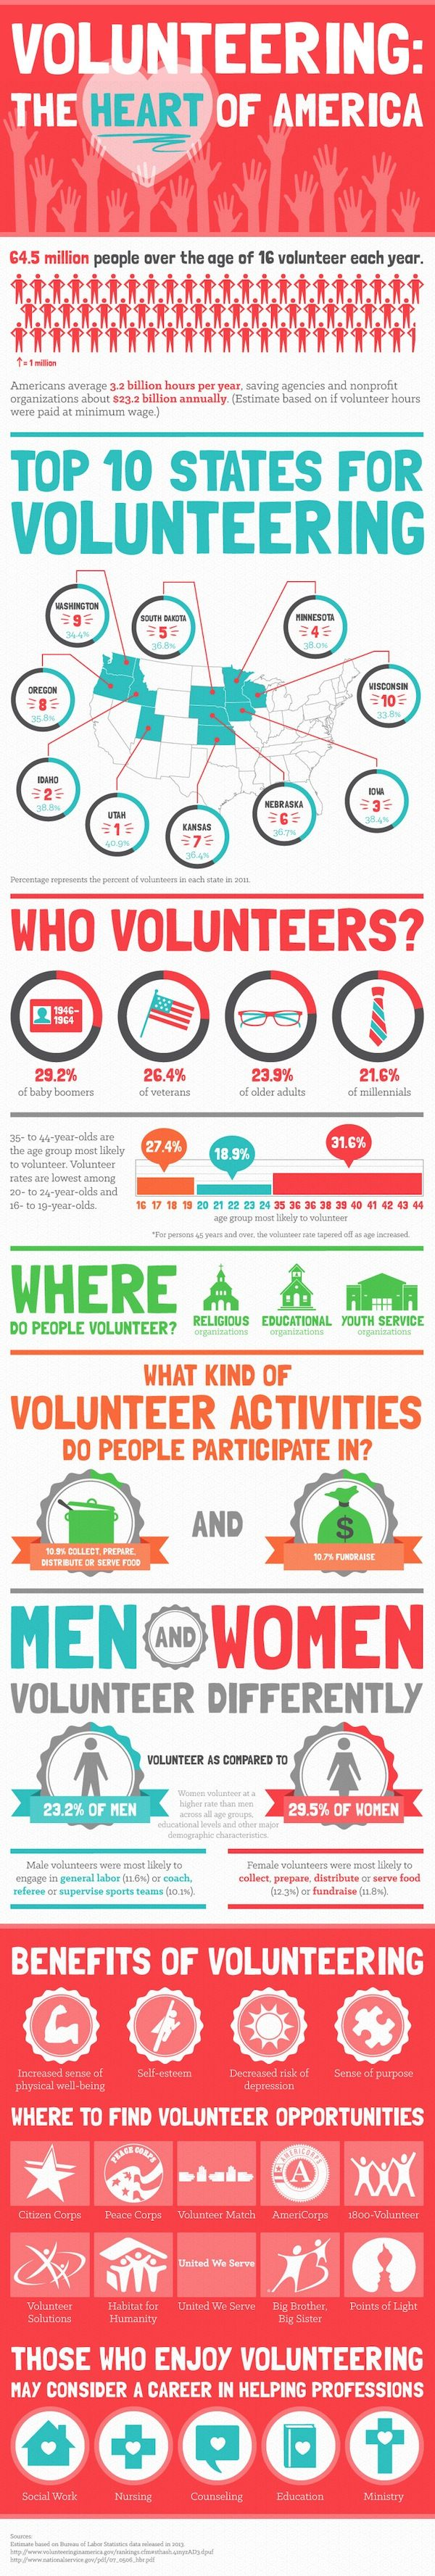 "In honor of volunteers and all they do, ""Heart of America"" infographic details where most volunteers reside, why they volunteer, what causes they volunteer for and more."